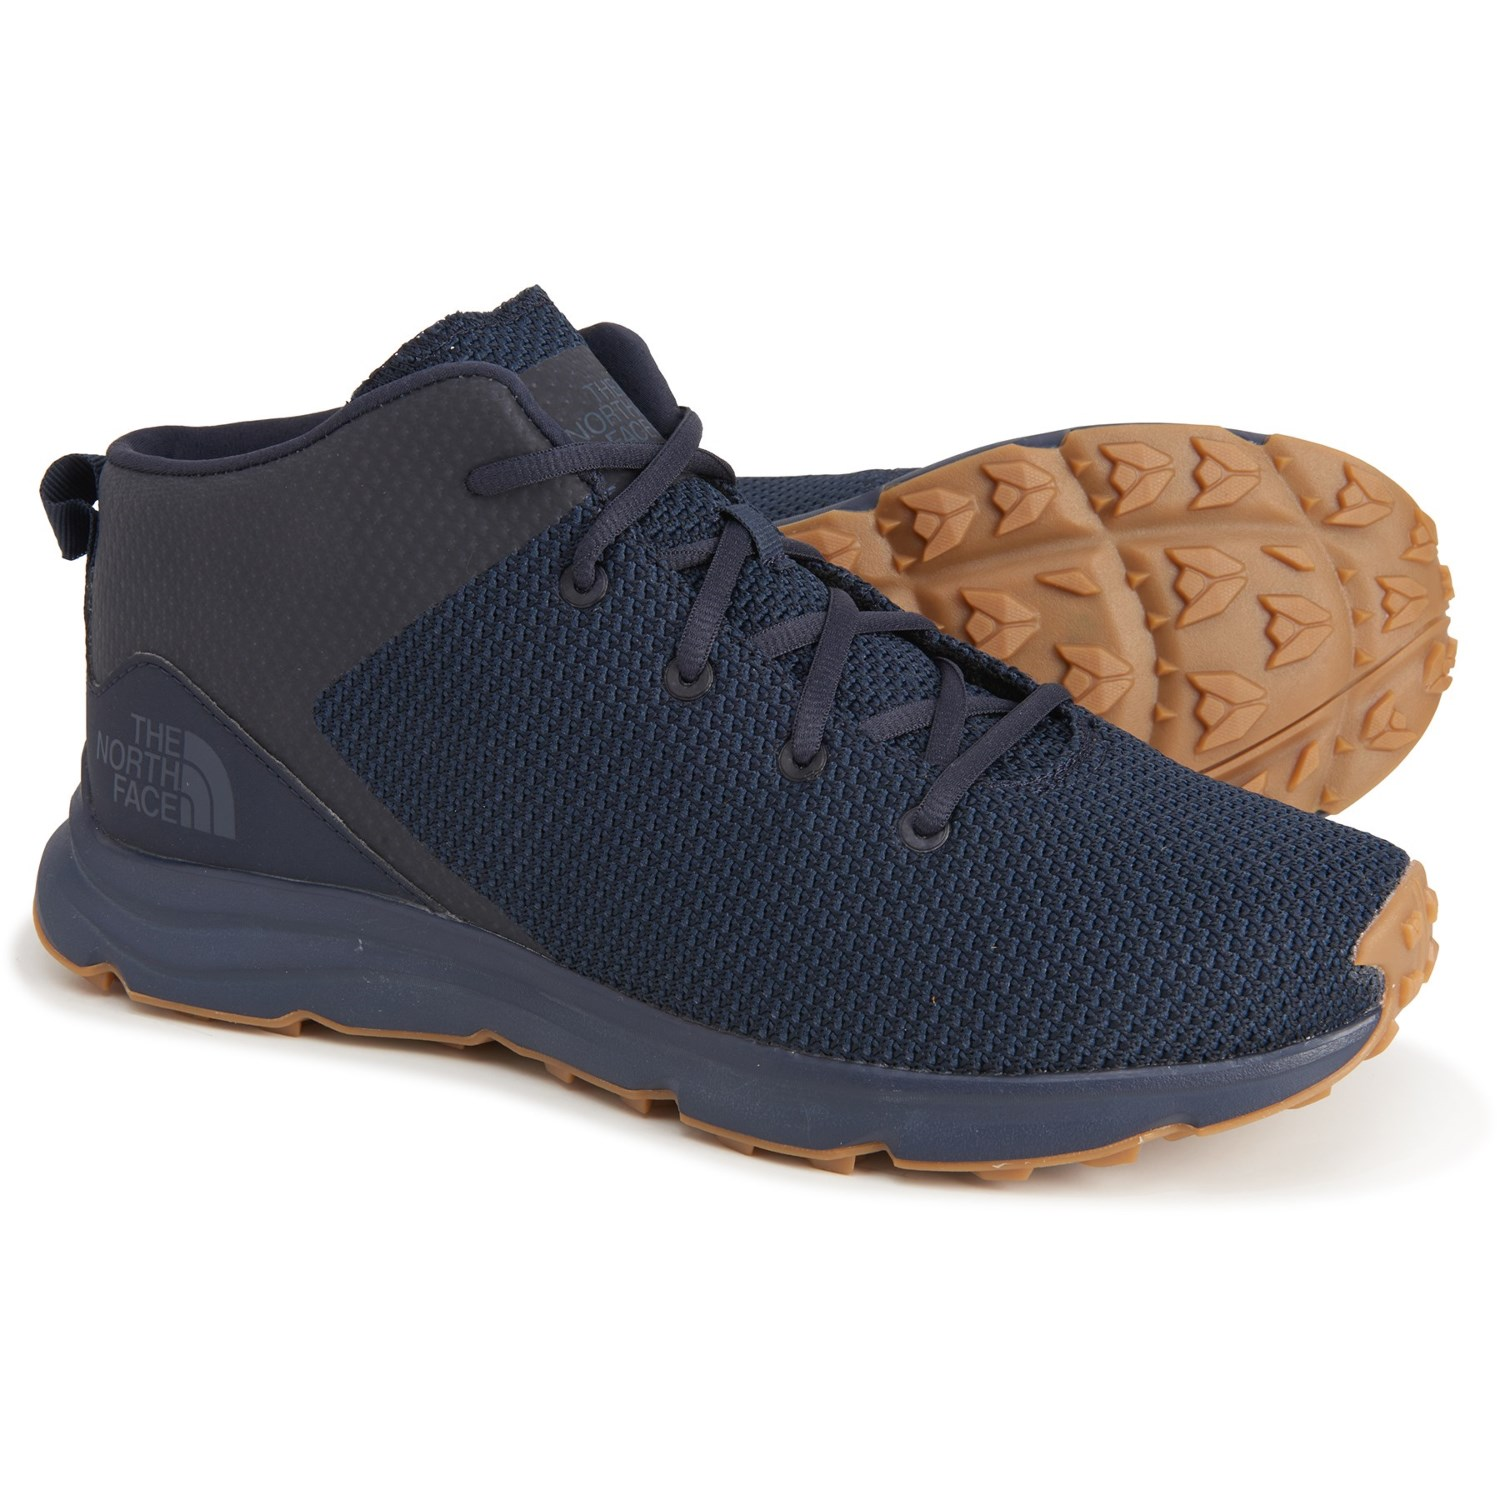 The North Face Sestriere Mid Hiking